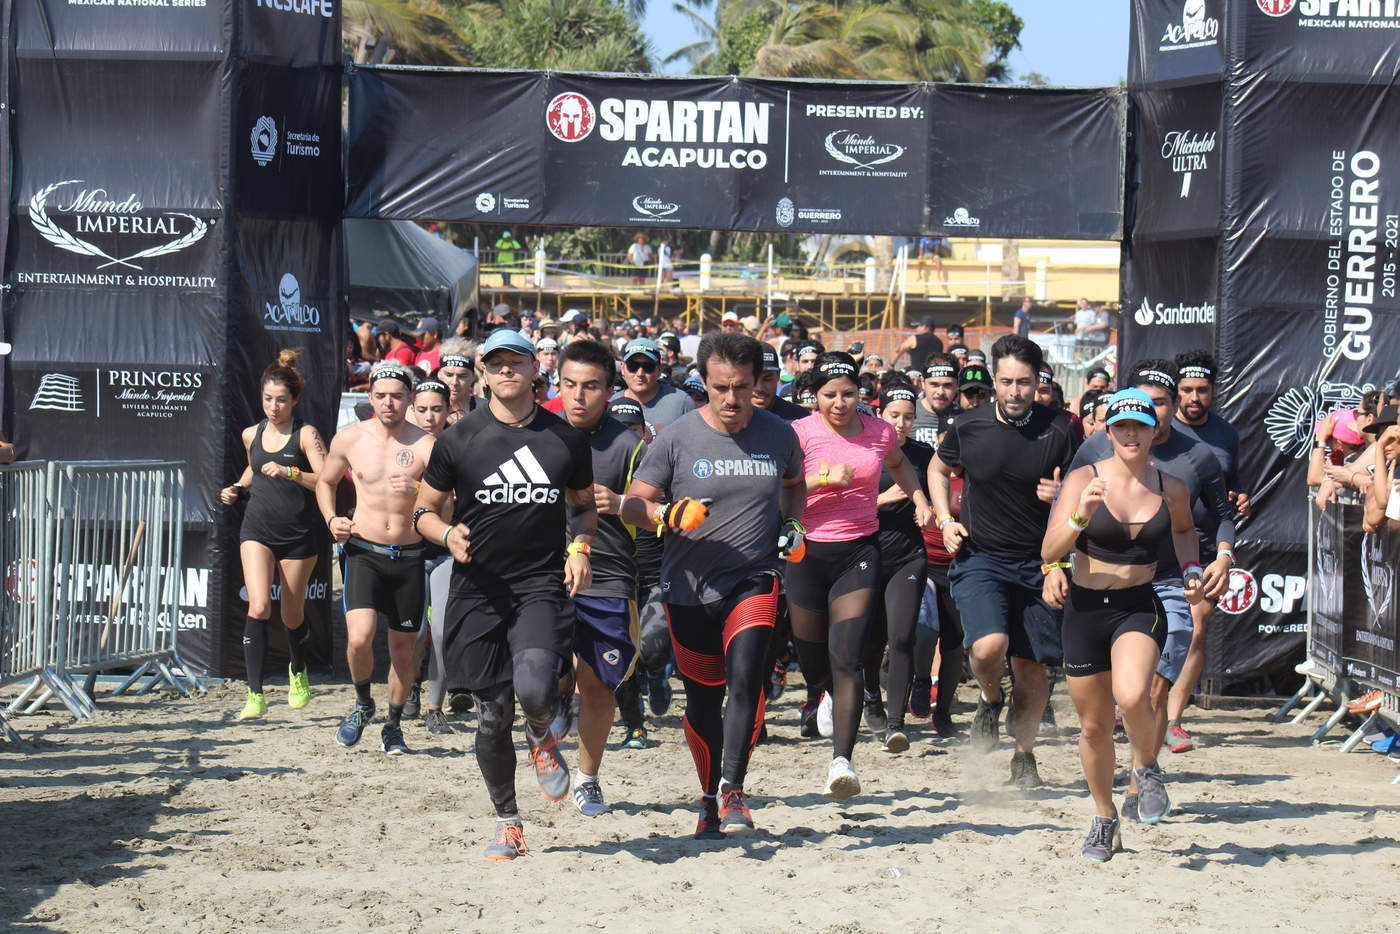 spartan race acapulco princess